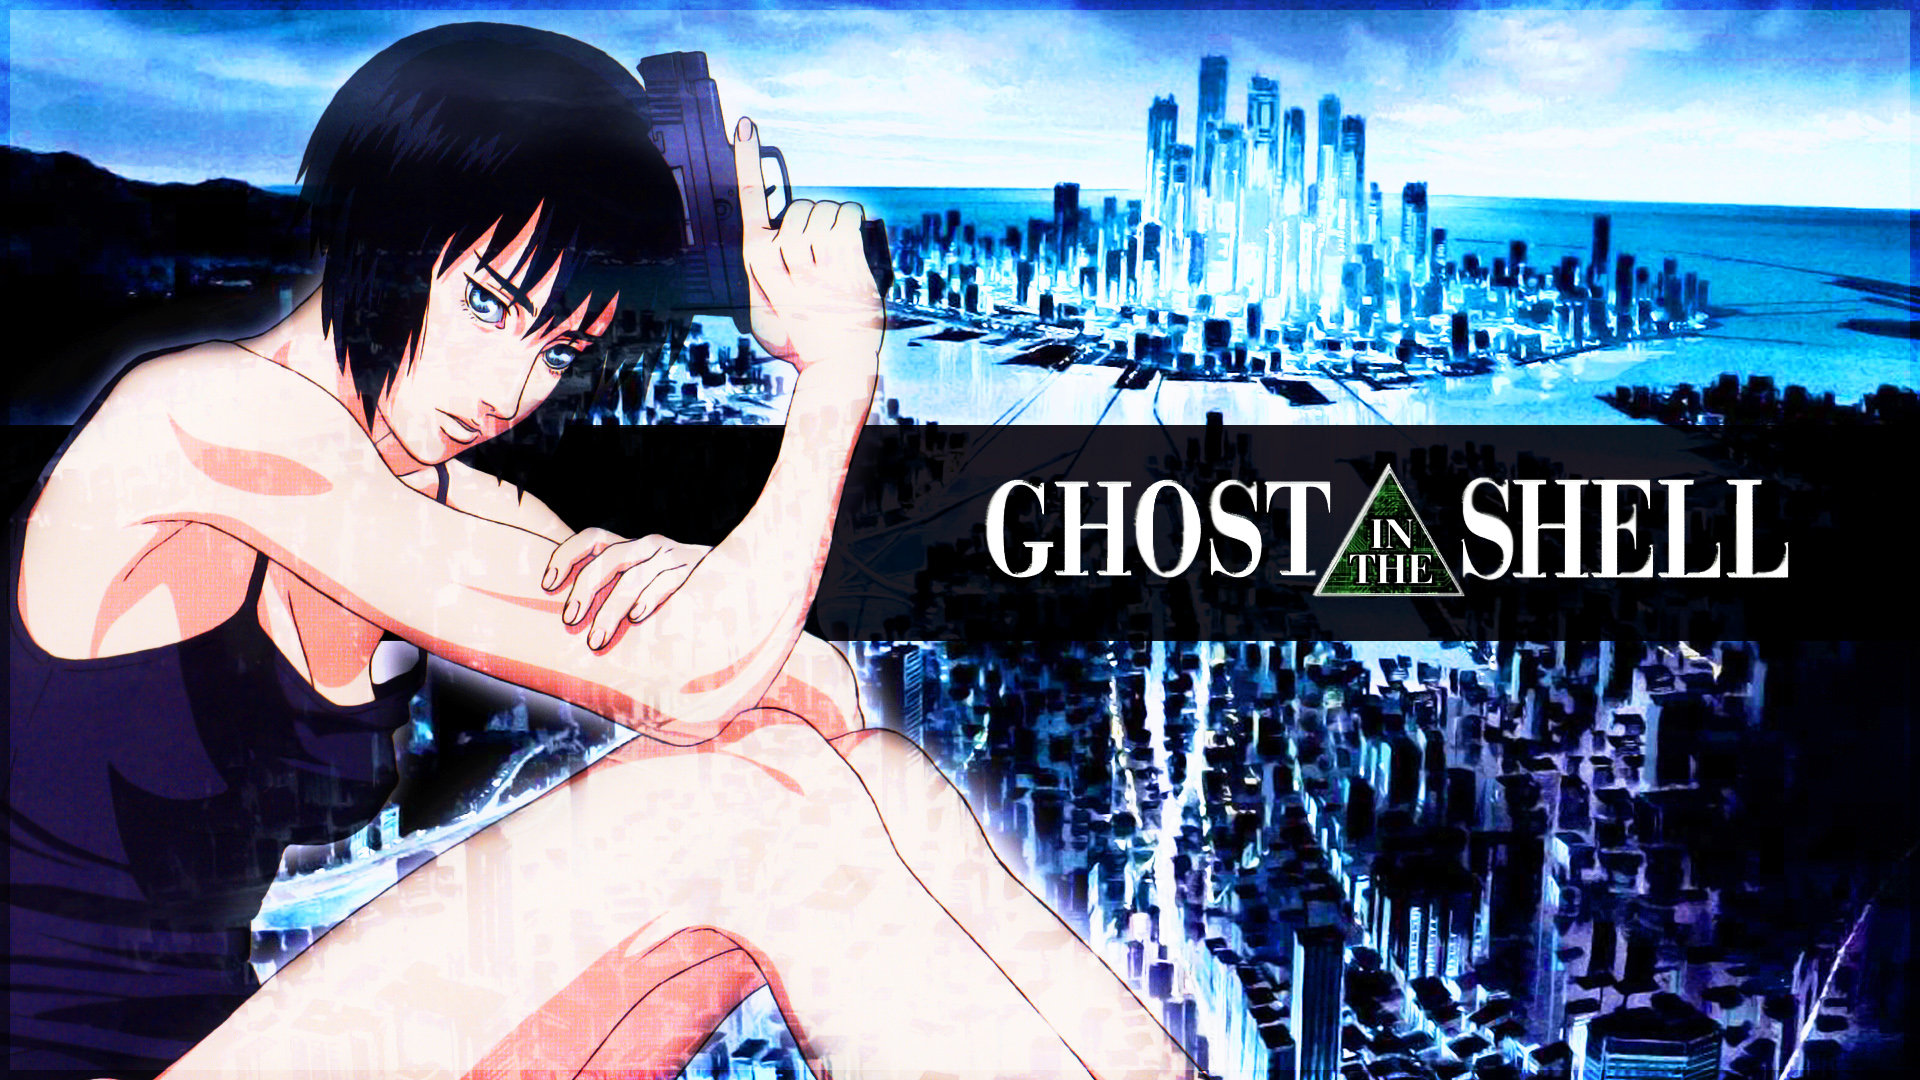 High Resolution Ghost In The Shell 1080p Wallpaper Id 442029 For Pc